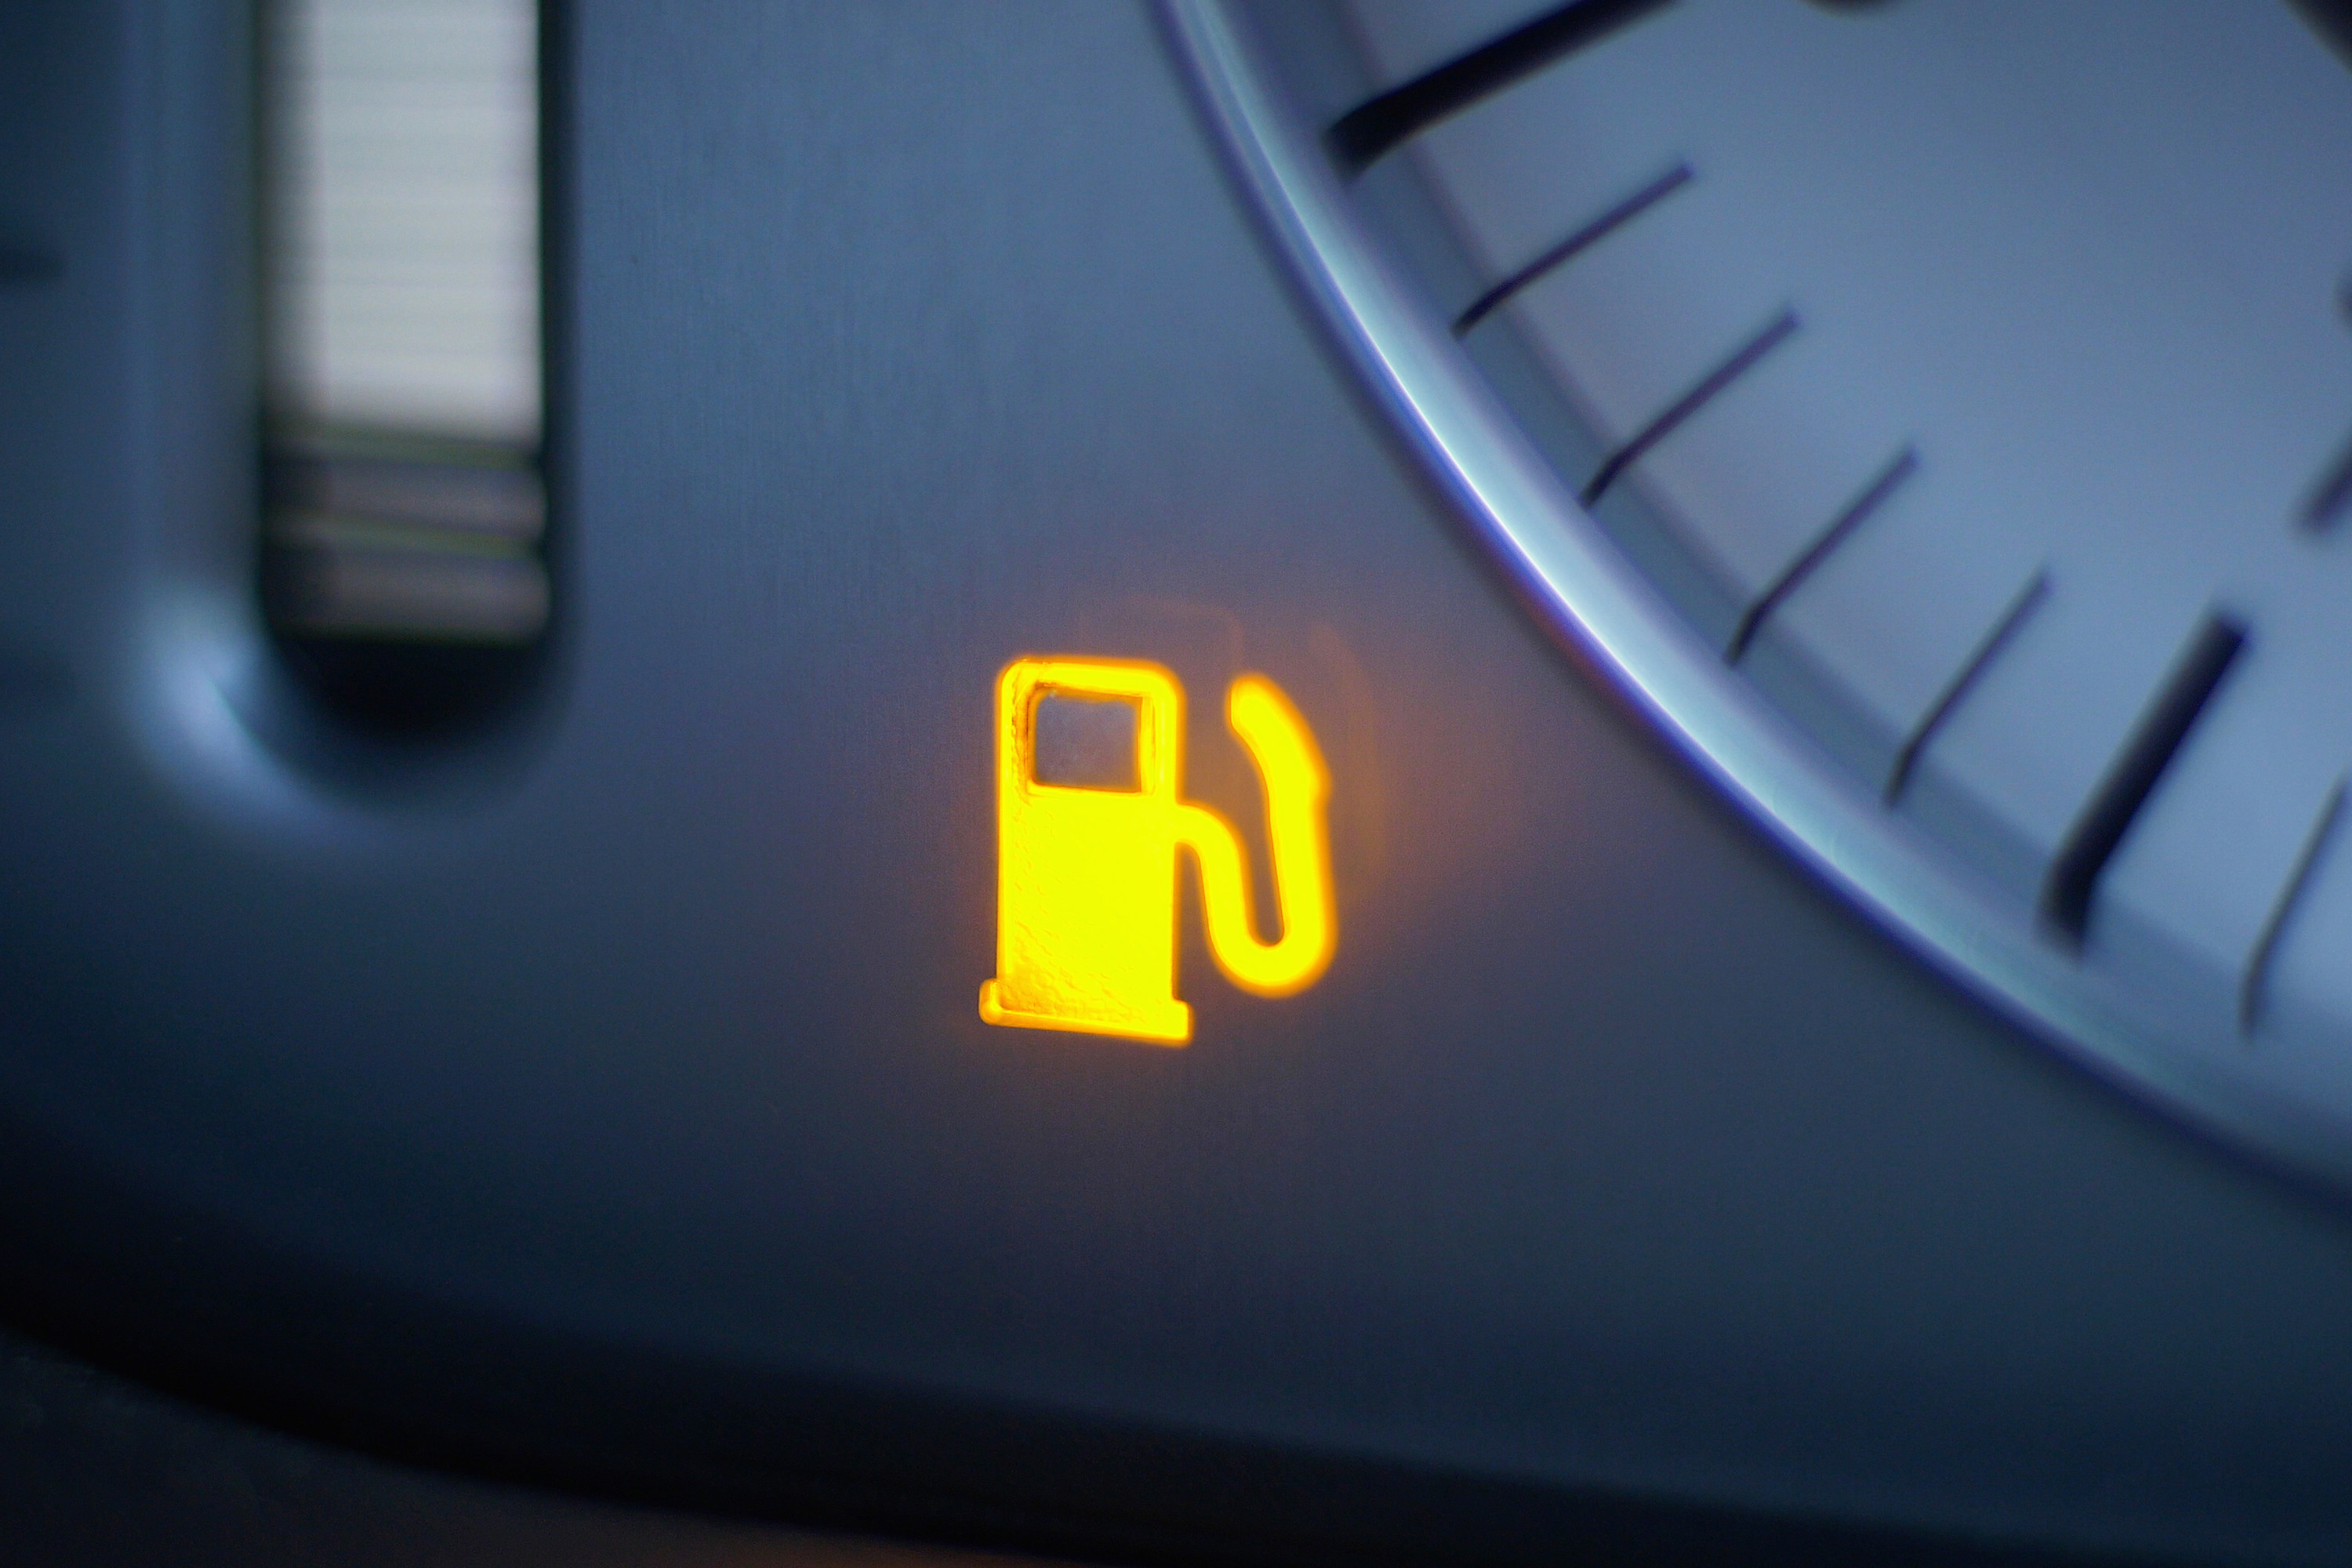 A fuel tank light that's on